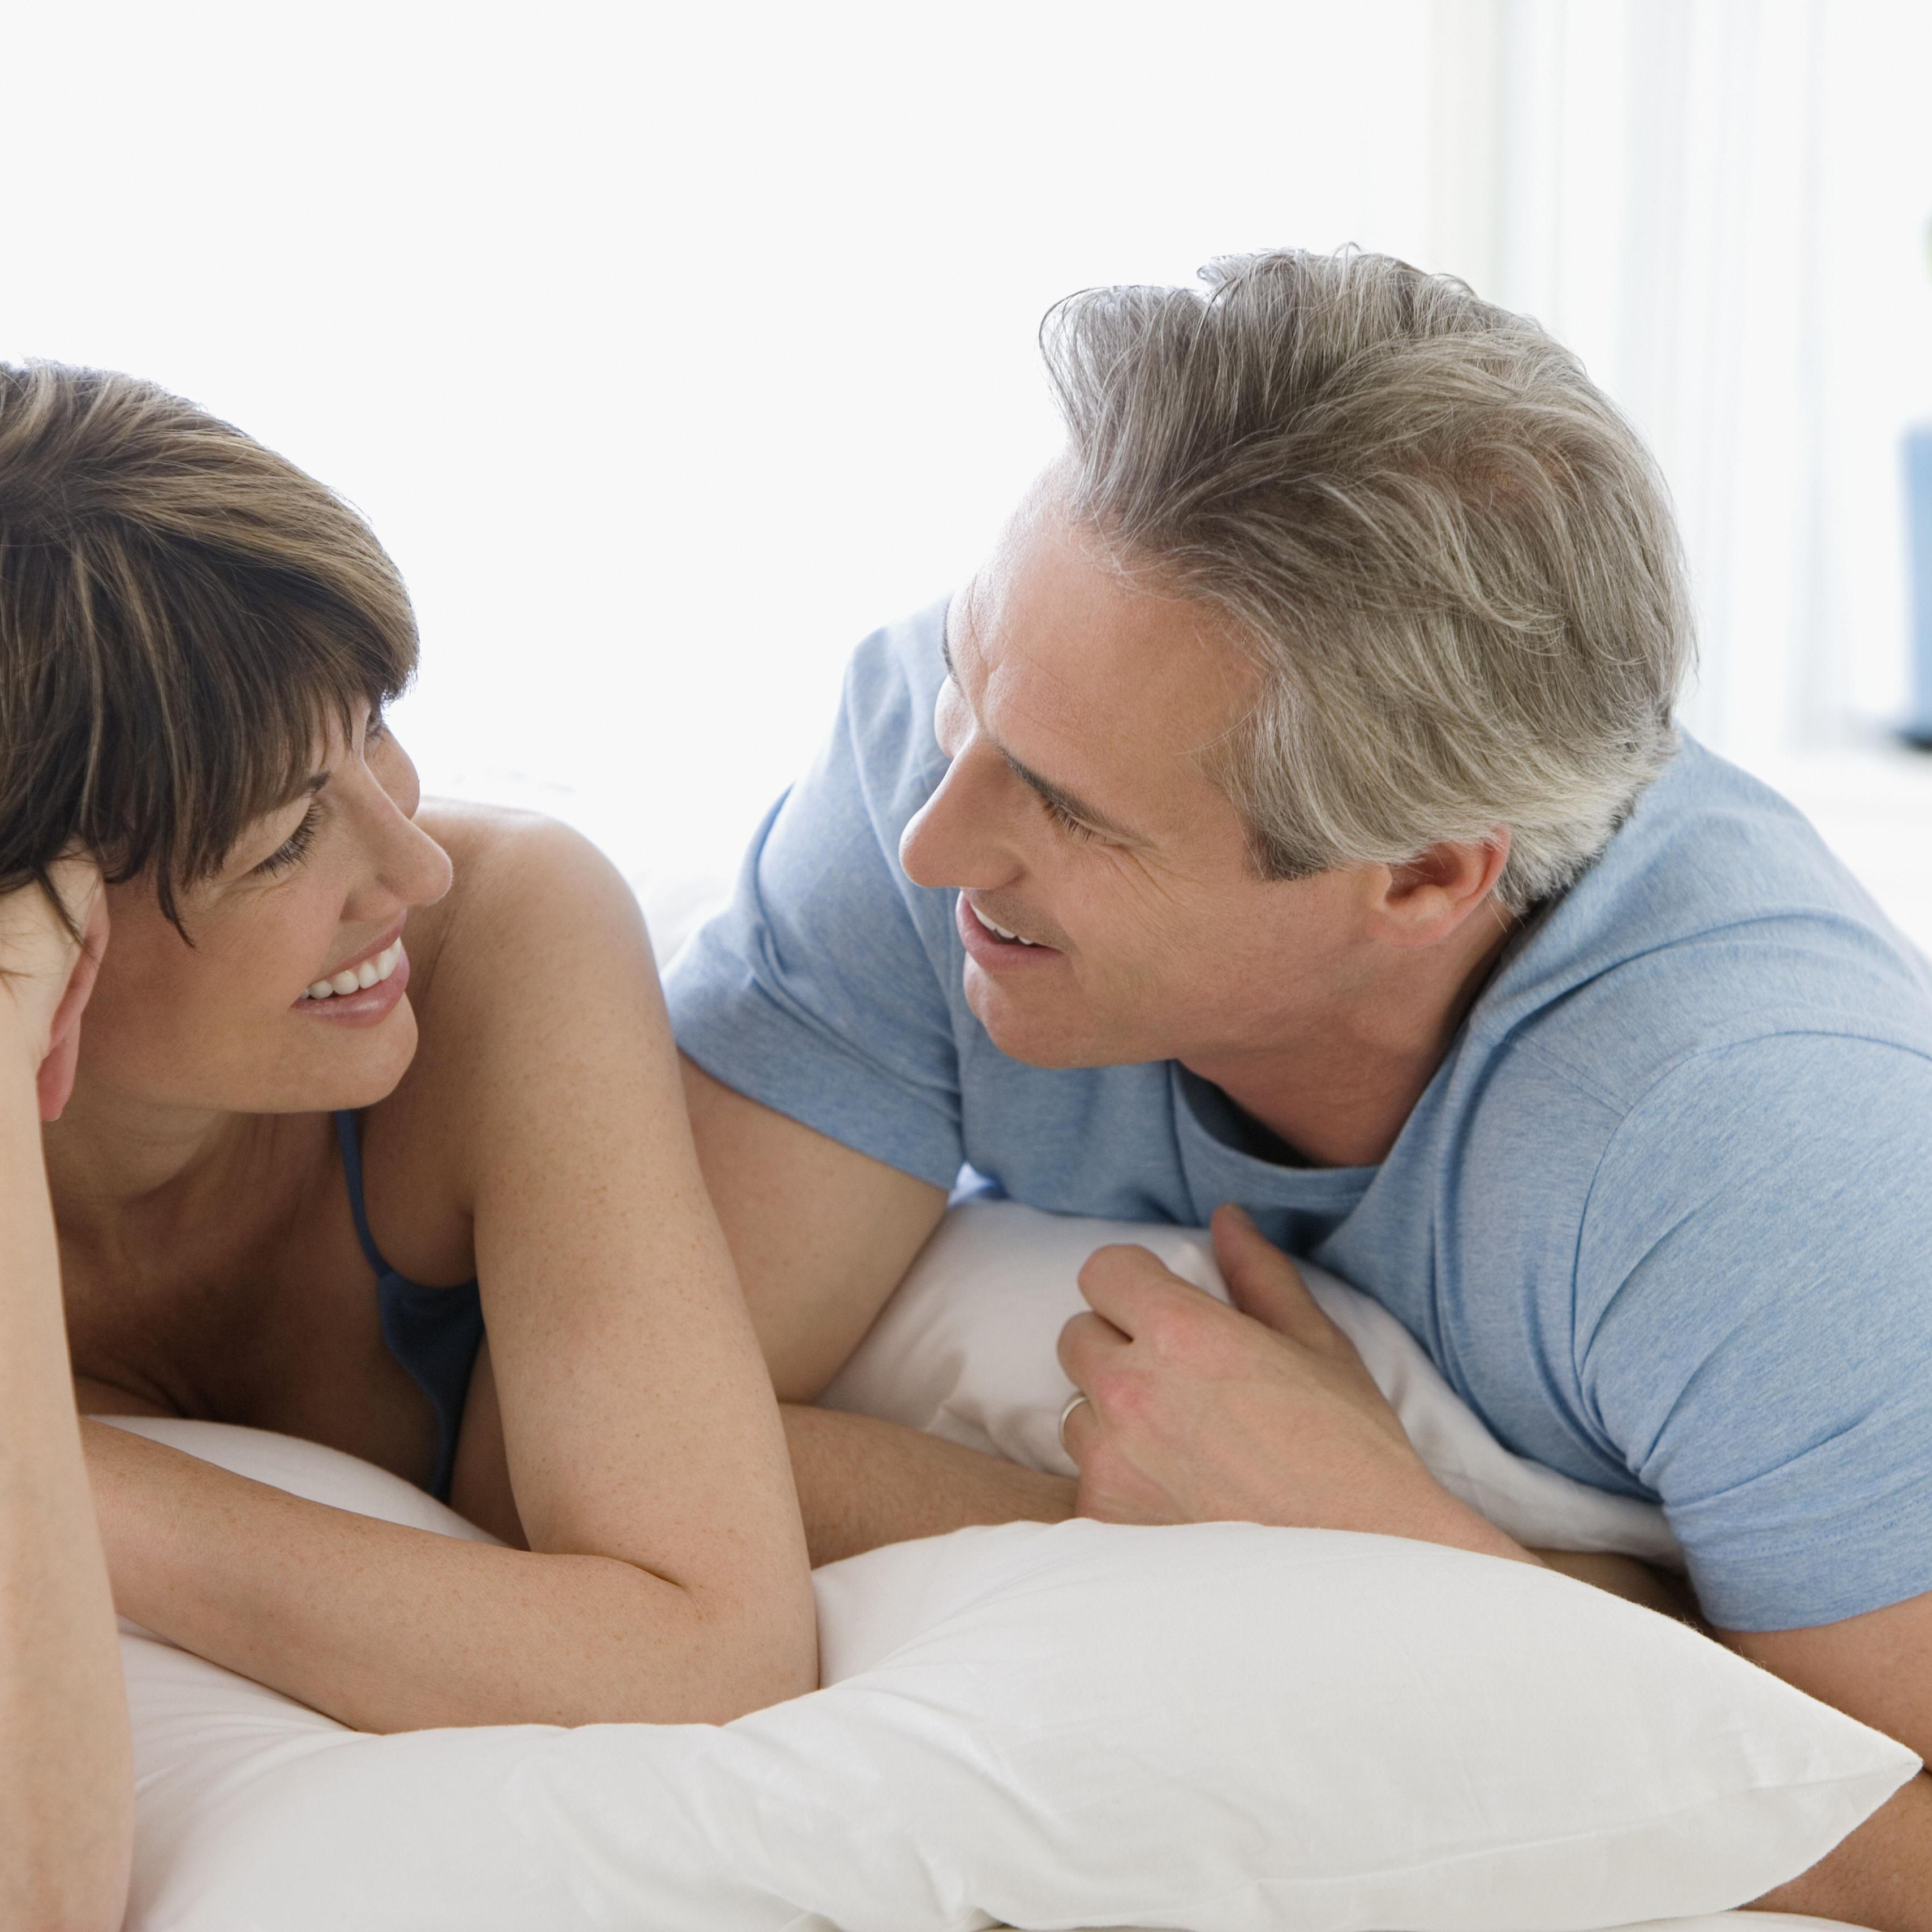 Suggestions mature sex physical limitations